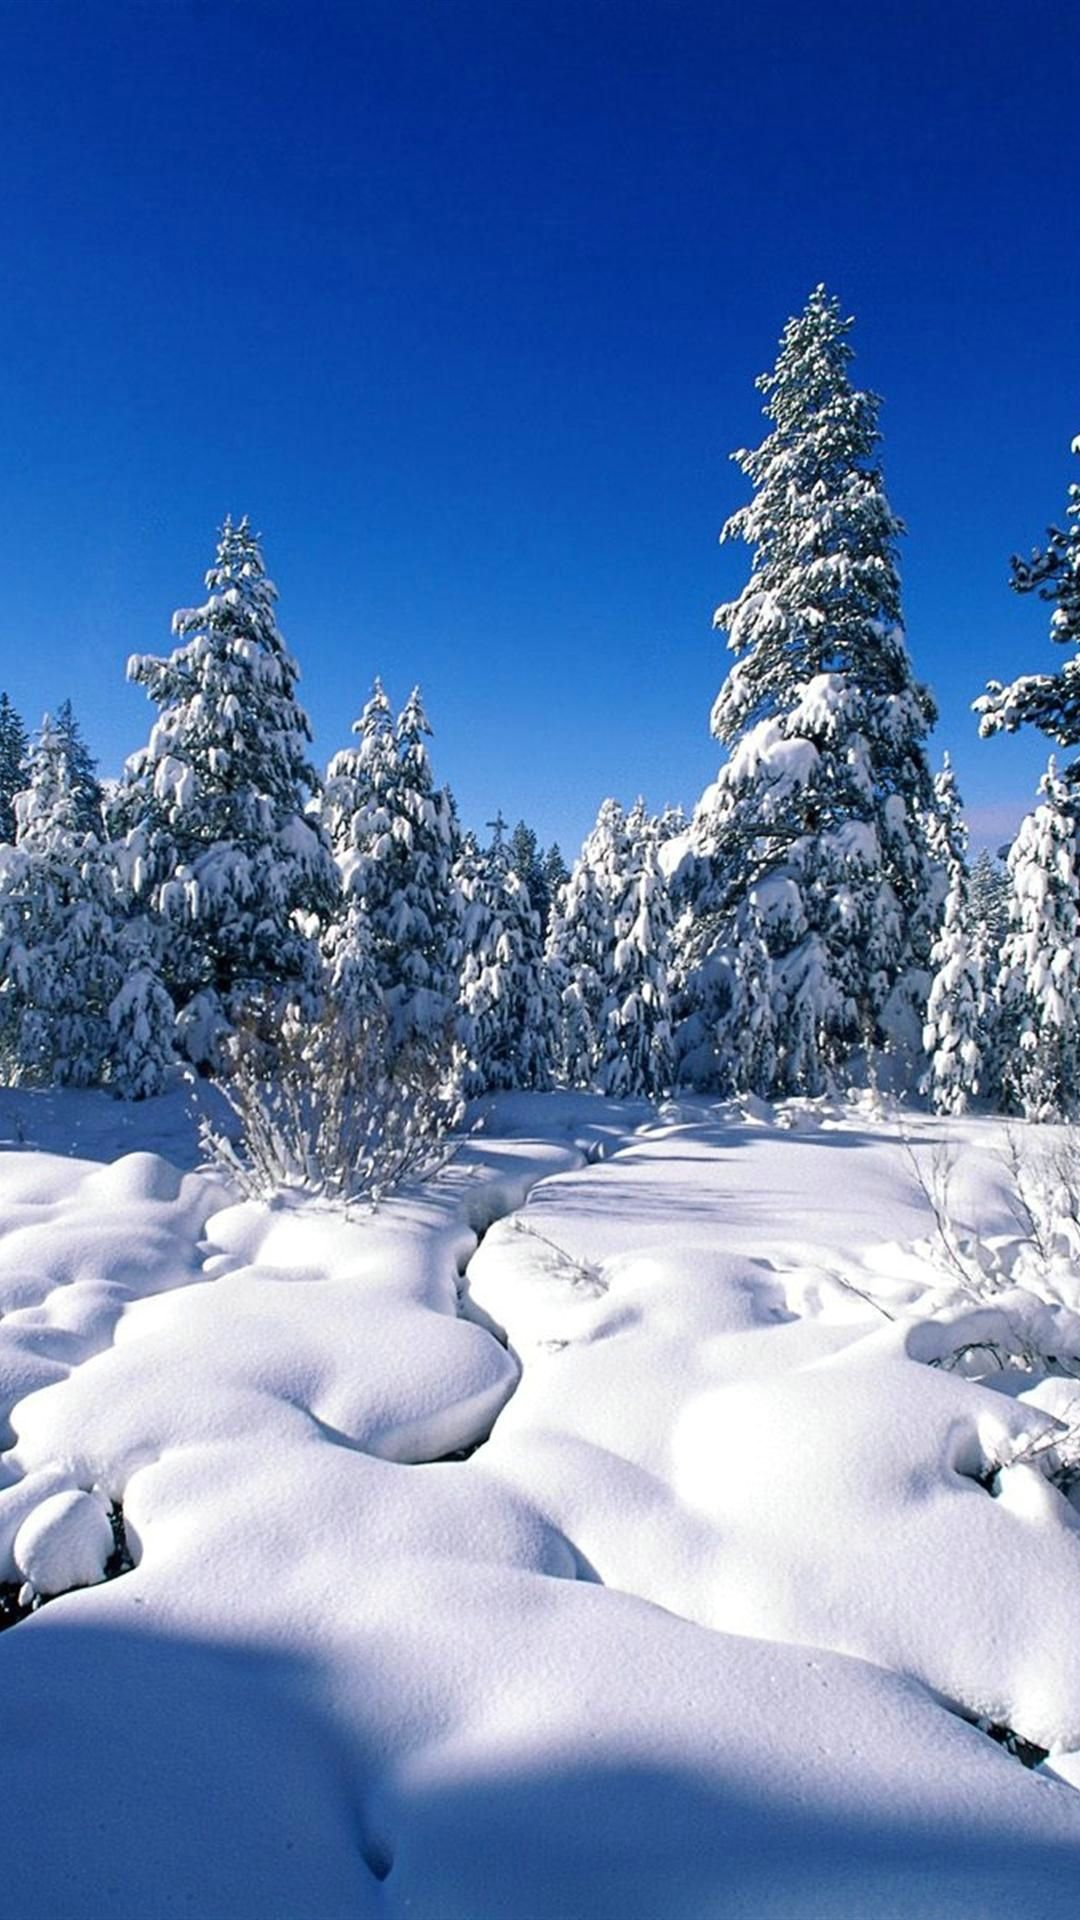 Winter Wallpaper For Iphone Download Free Winter Wallpaper Snow Wallpaper Iphone Winter Background